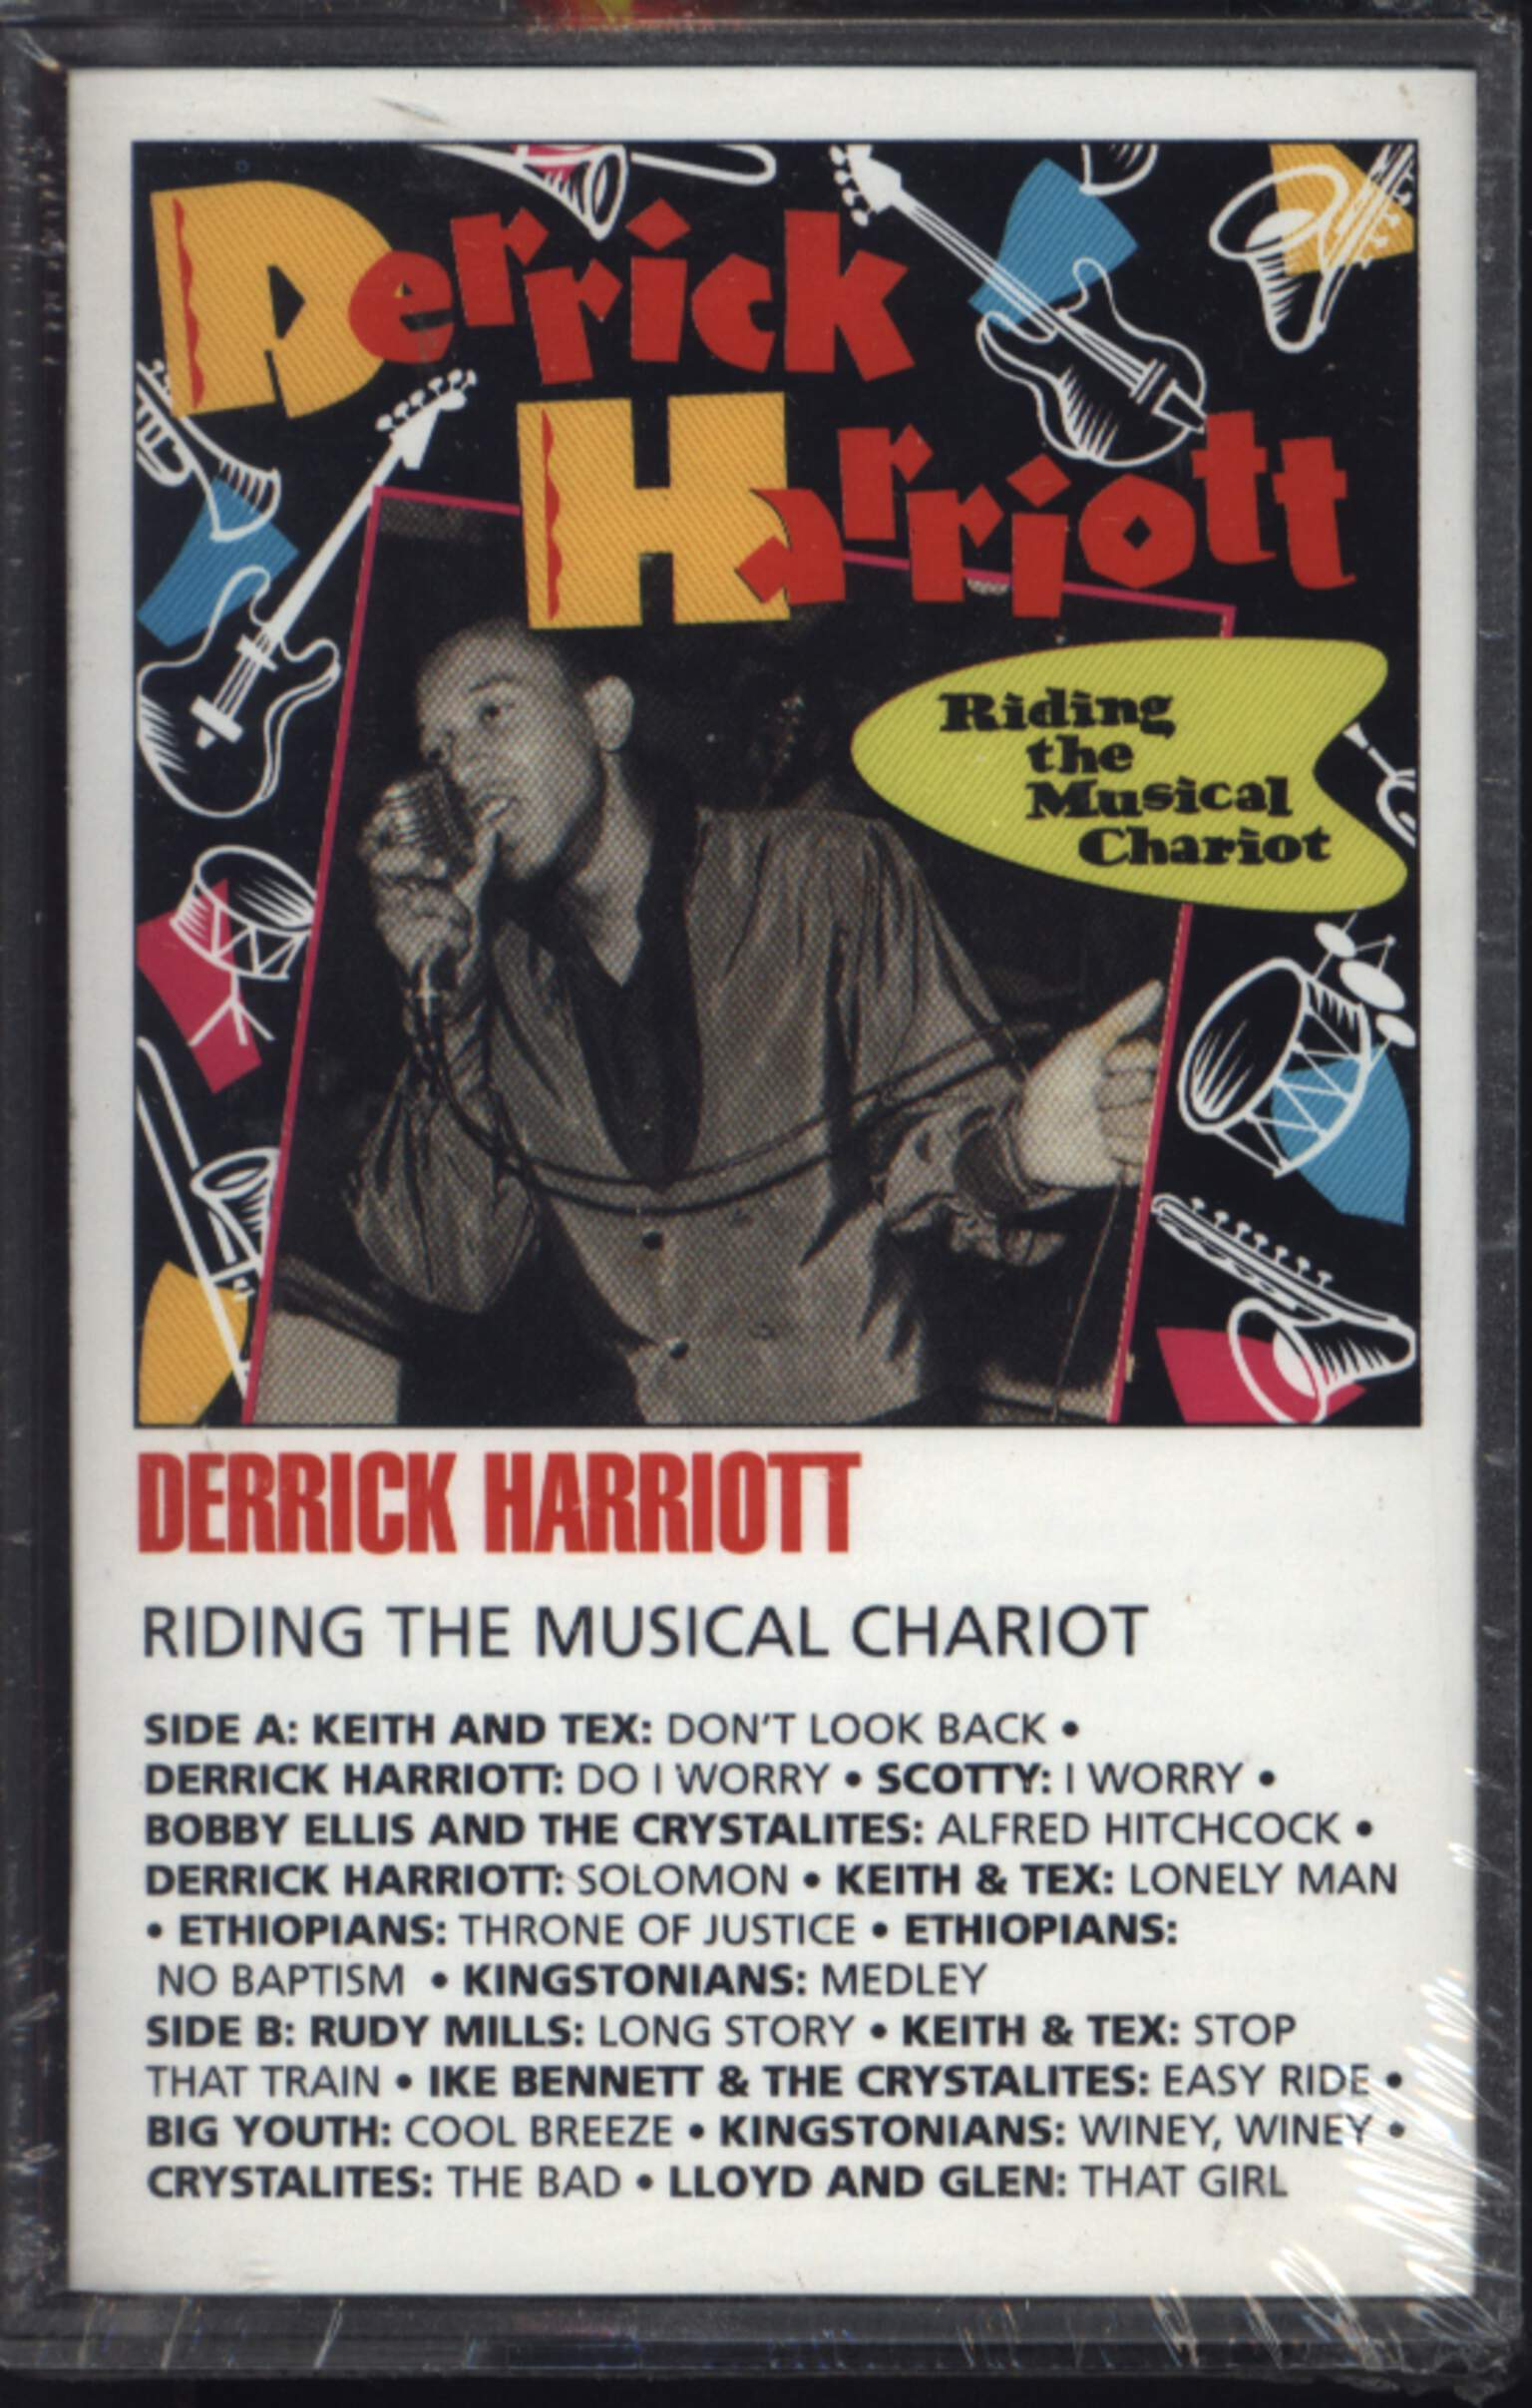 Derrick Harriott: Riding The Musical Chariot, Compact Cassette